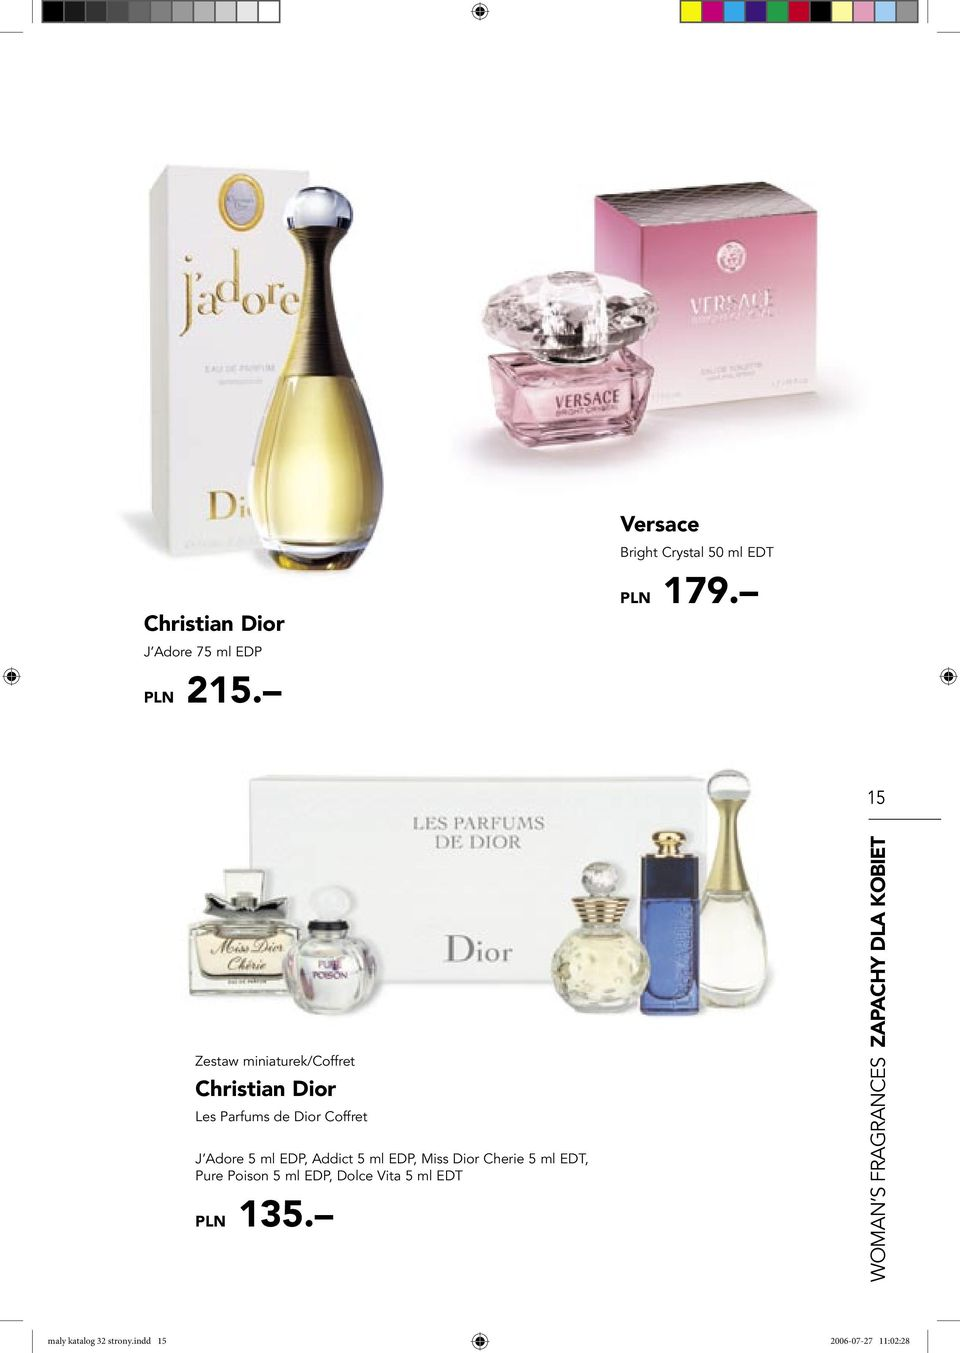 Addict 5 ml EDP, Miss Dior Cherie 5 ml EDT, Pure Poison 5 ml EDP, Dolce Vita 5 ml EDT PLN